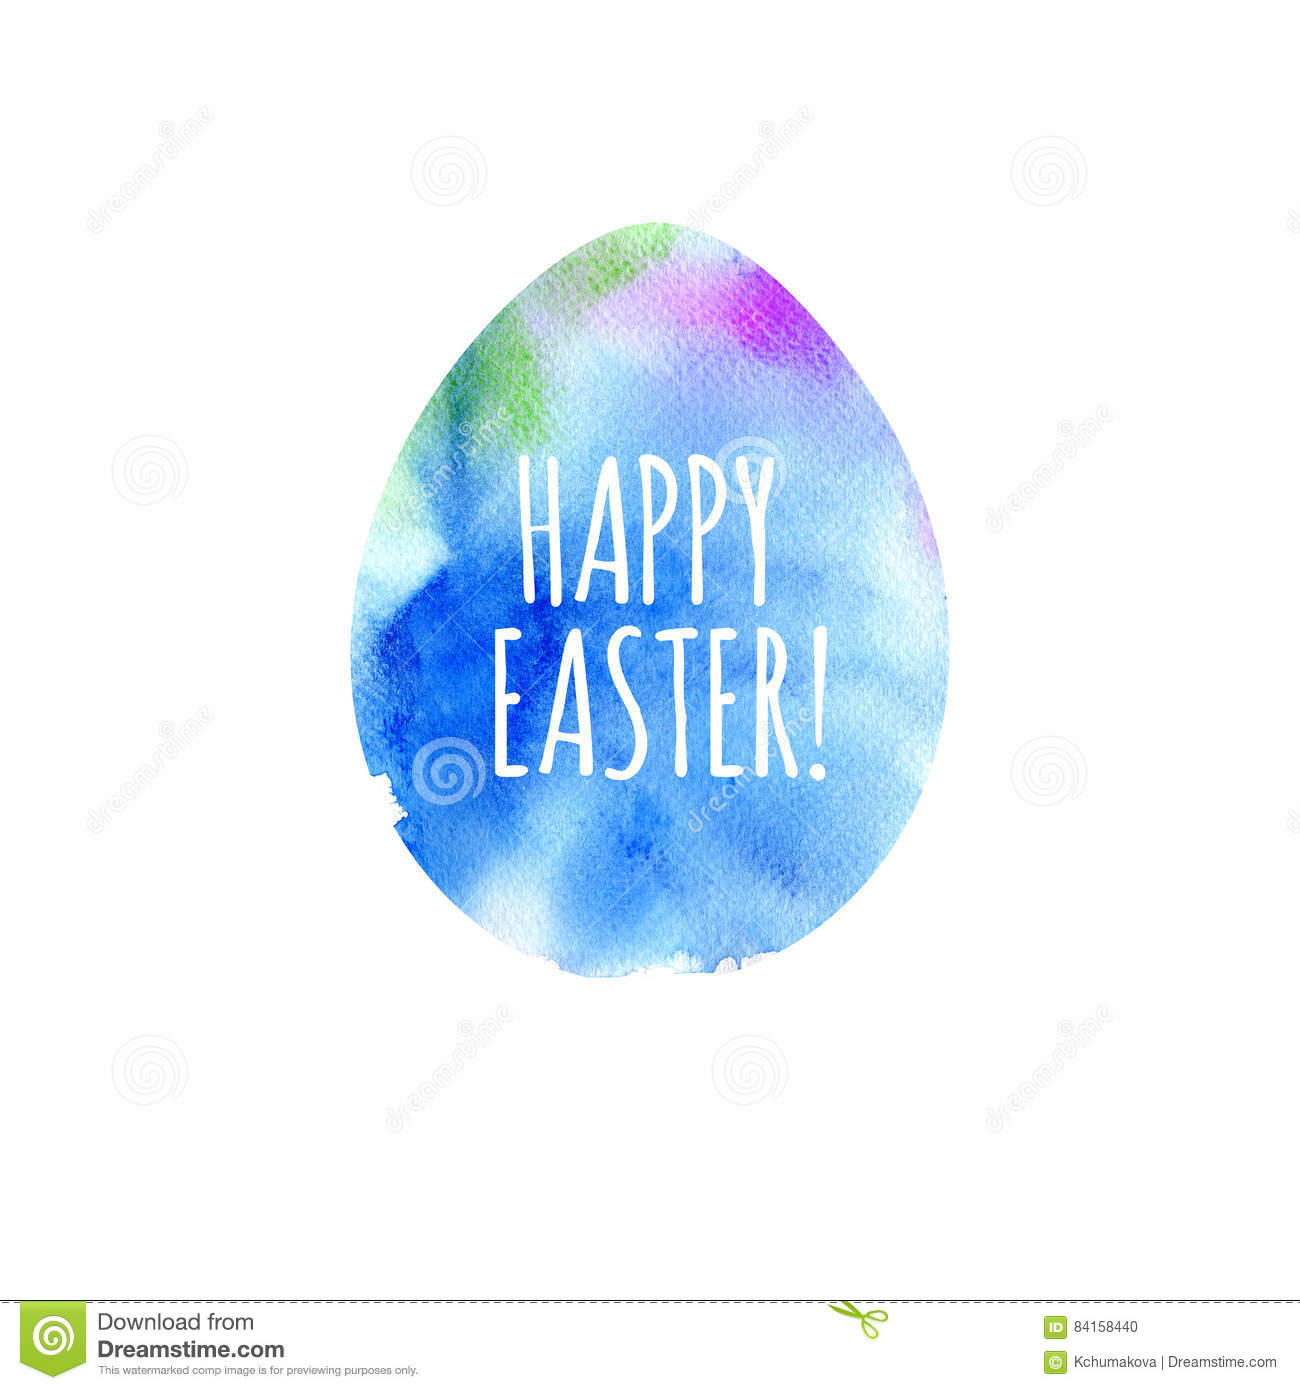 modern happy easter template for greeting card or invitation design